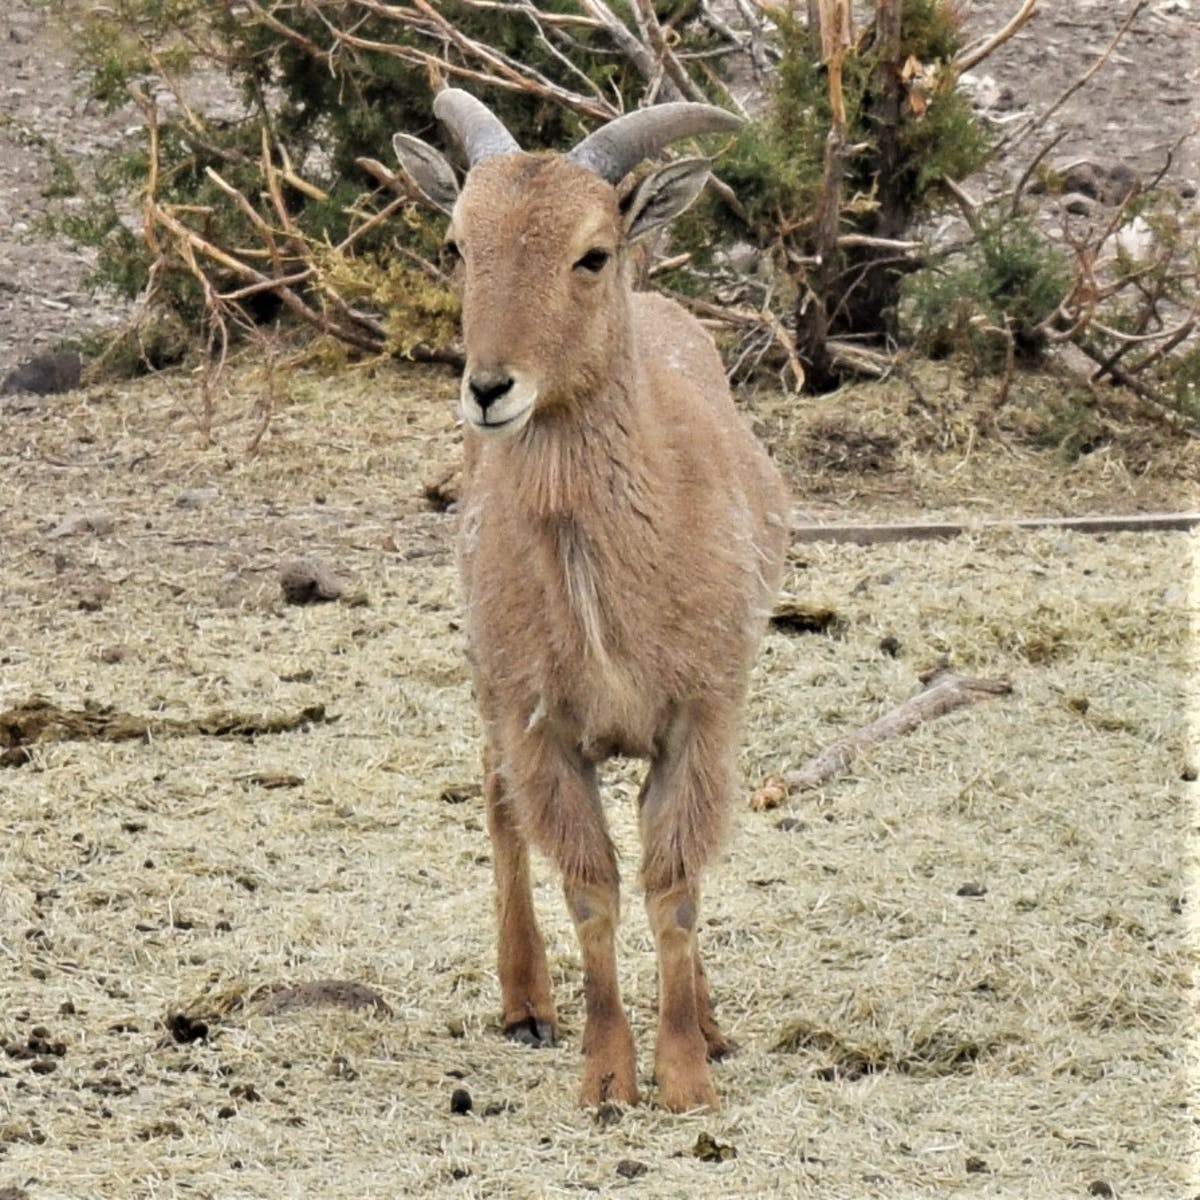 aoudad standing on top of a dirt field